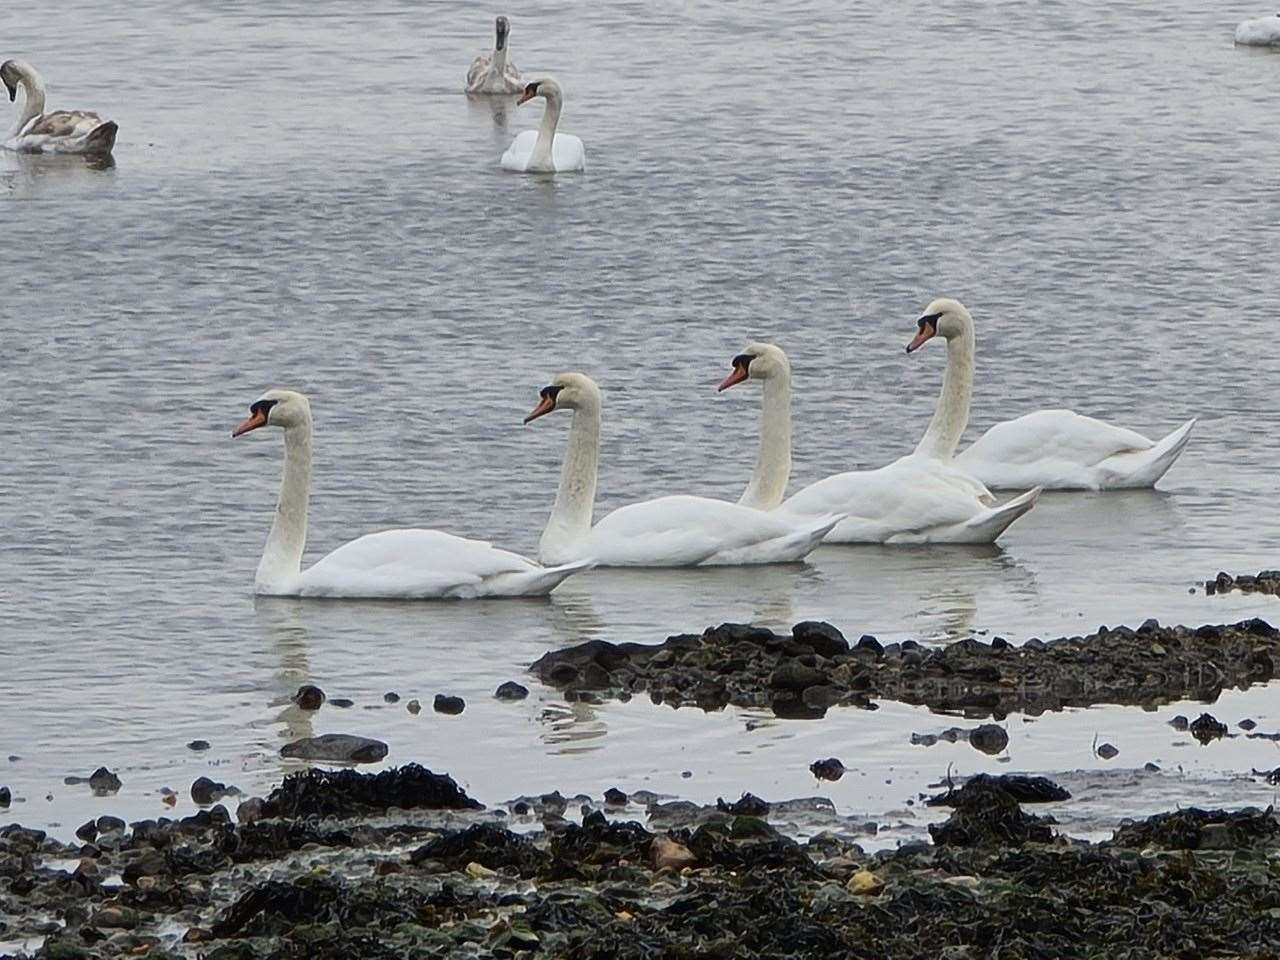 12th March: Bill Bicknell captured these synchronised swans at Sturt pond in Milford